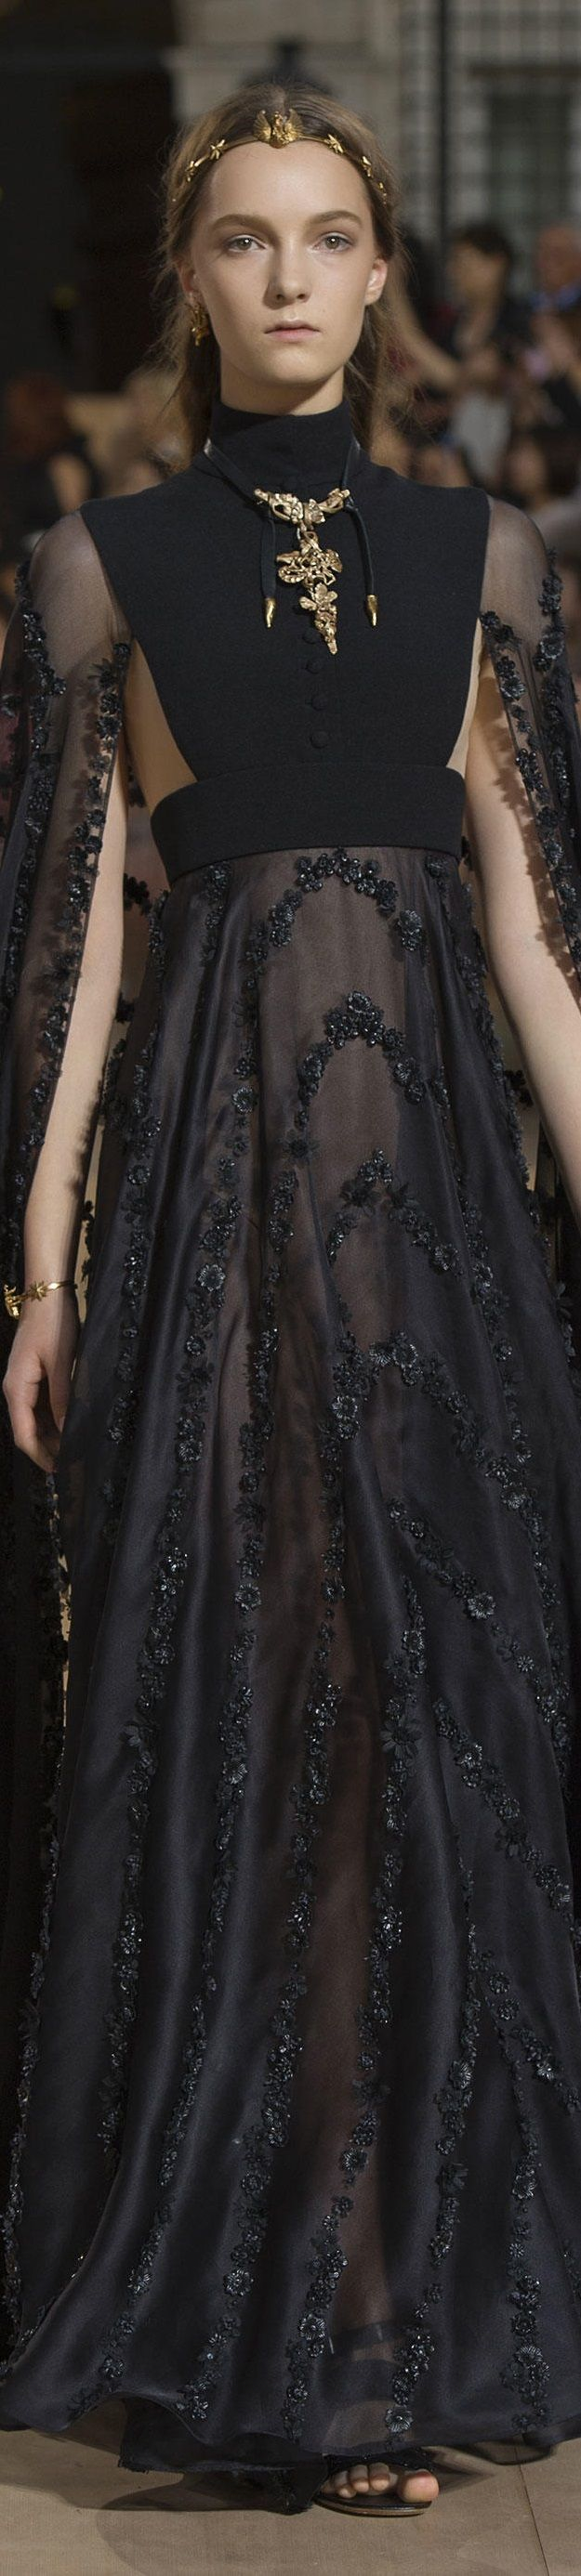 Evening Dress Valentino FW 2015 couture. Luxury, fashion, weddings, bridal style...